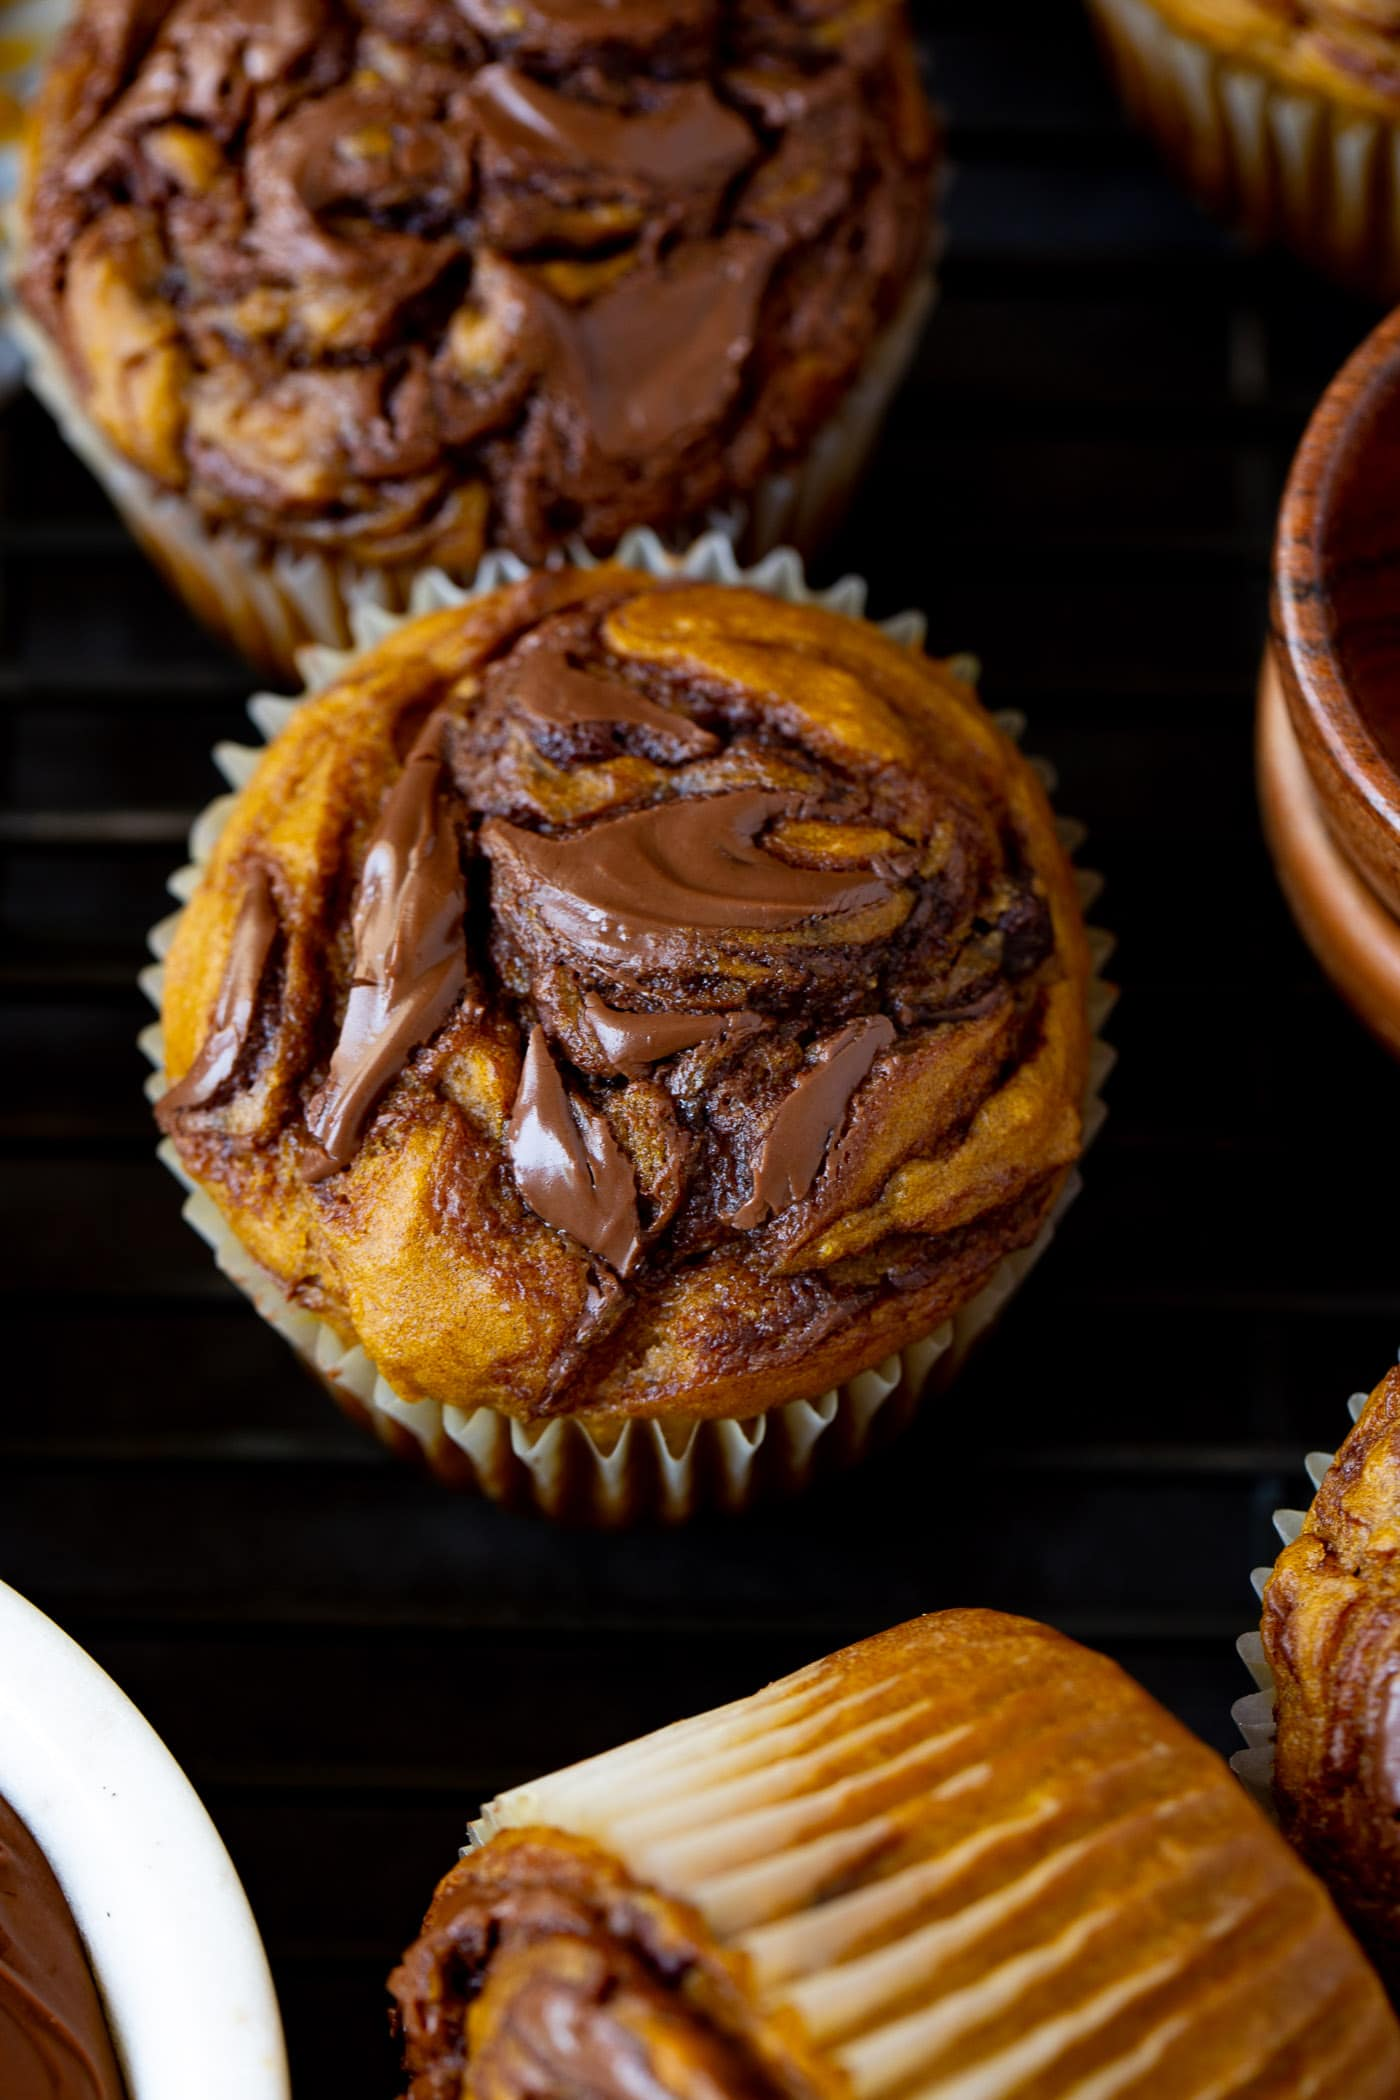 A top view of a Nutella swirled pumpkin muffin. Nutella is swirled through the muffin before it is baked. Other muffins are in the background.